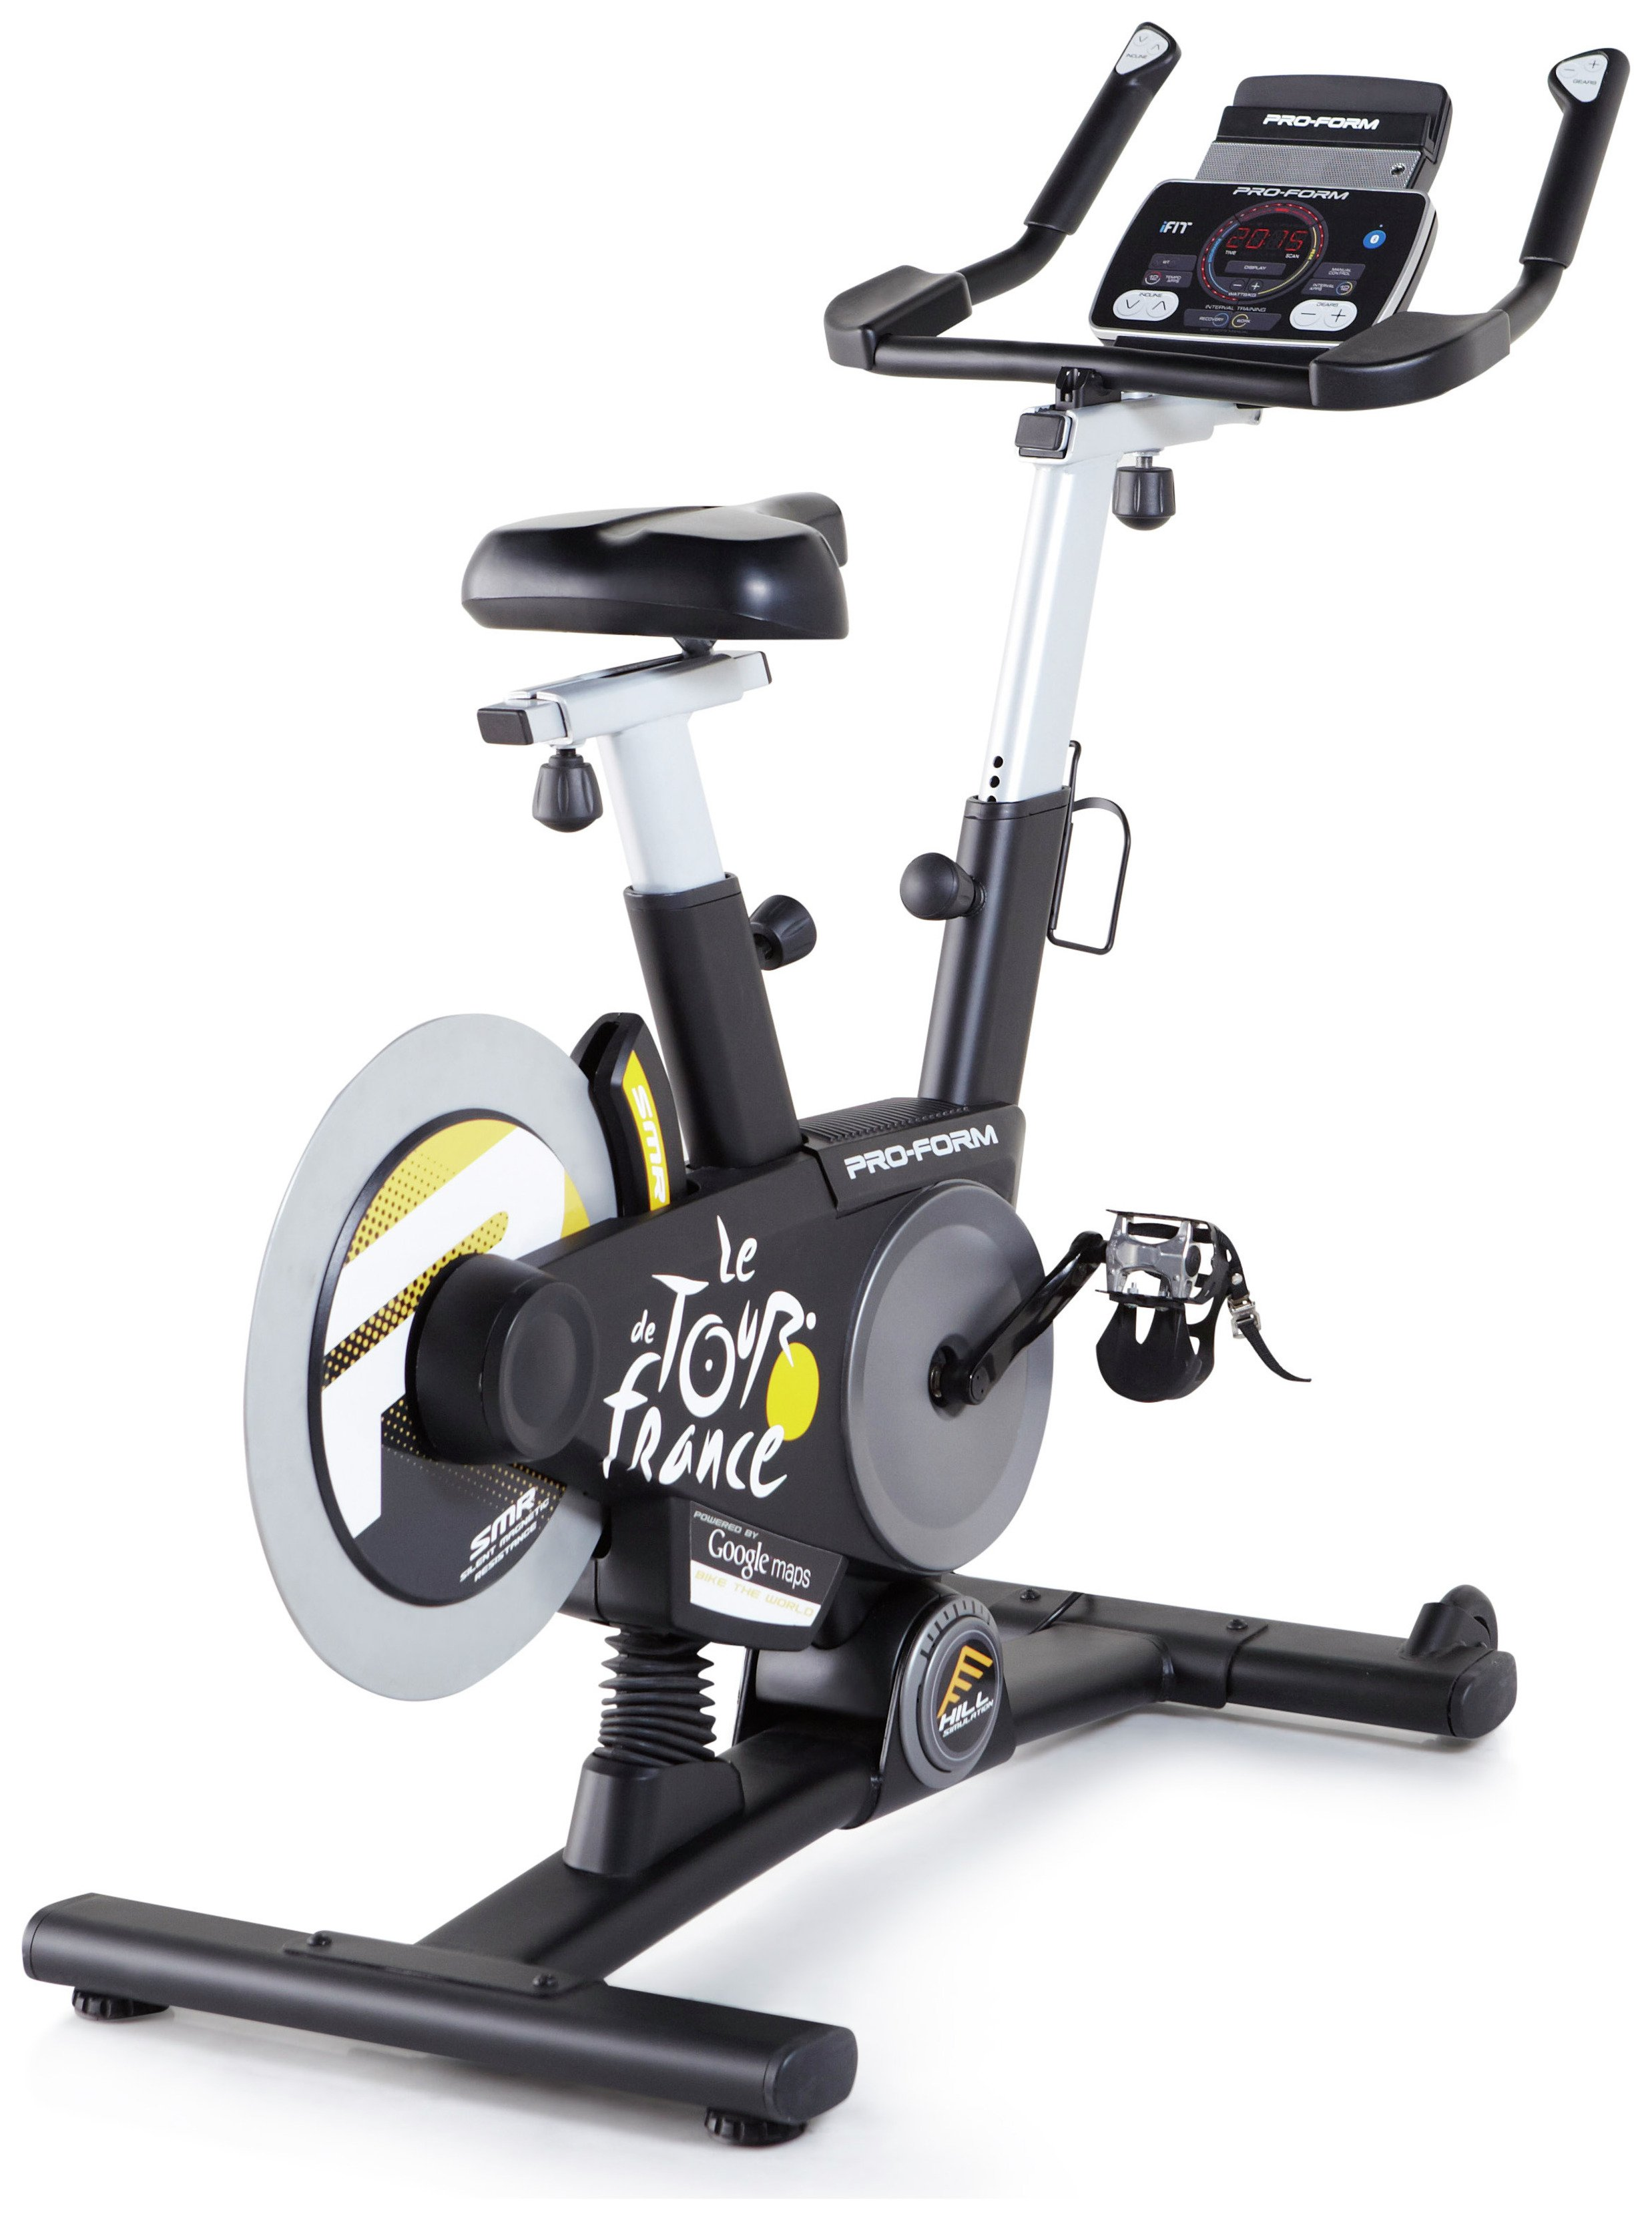 ProForm Tour de France 1.0 Indoor Trainer Exercise Bike